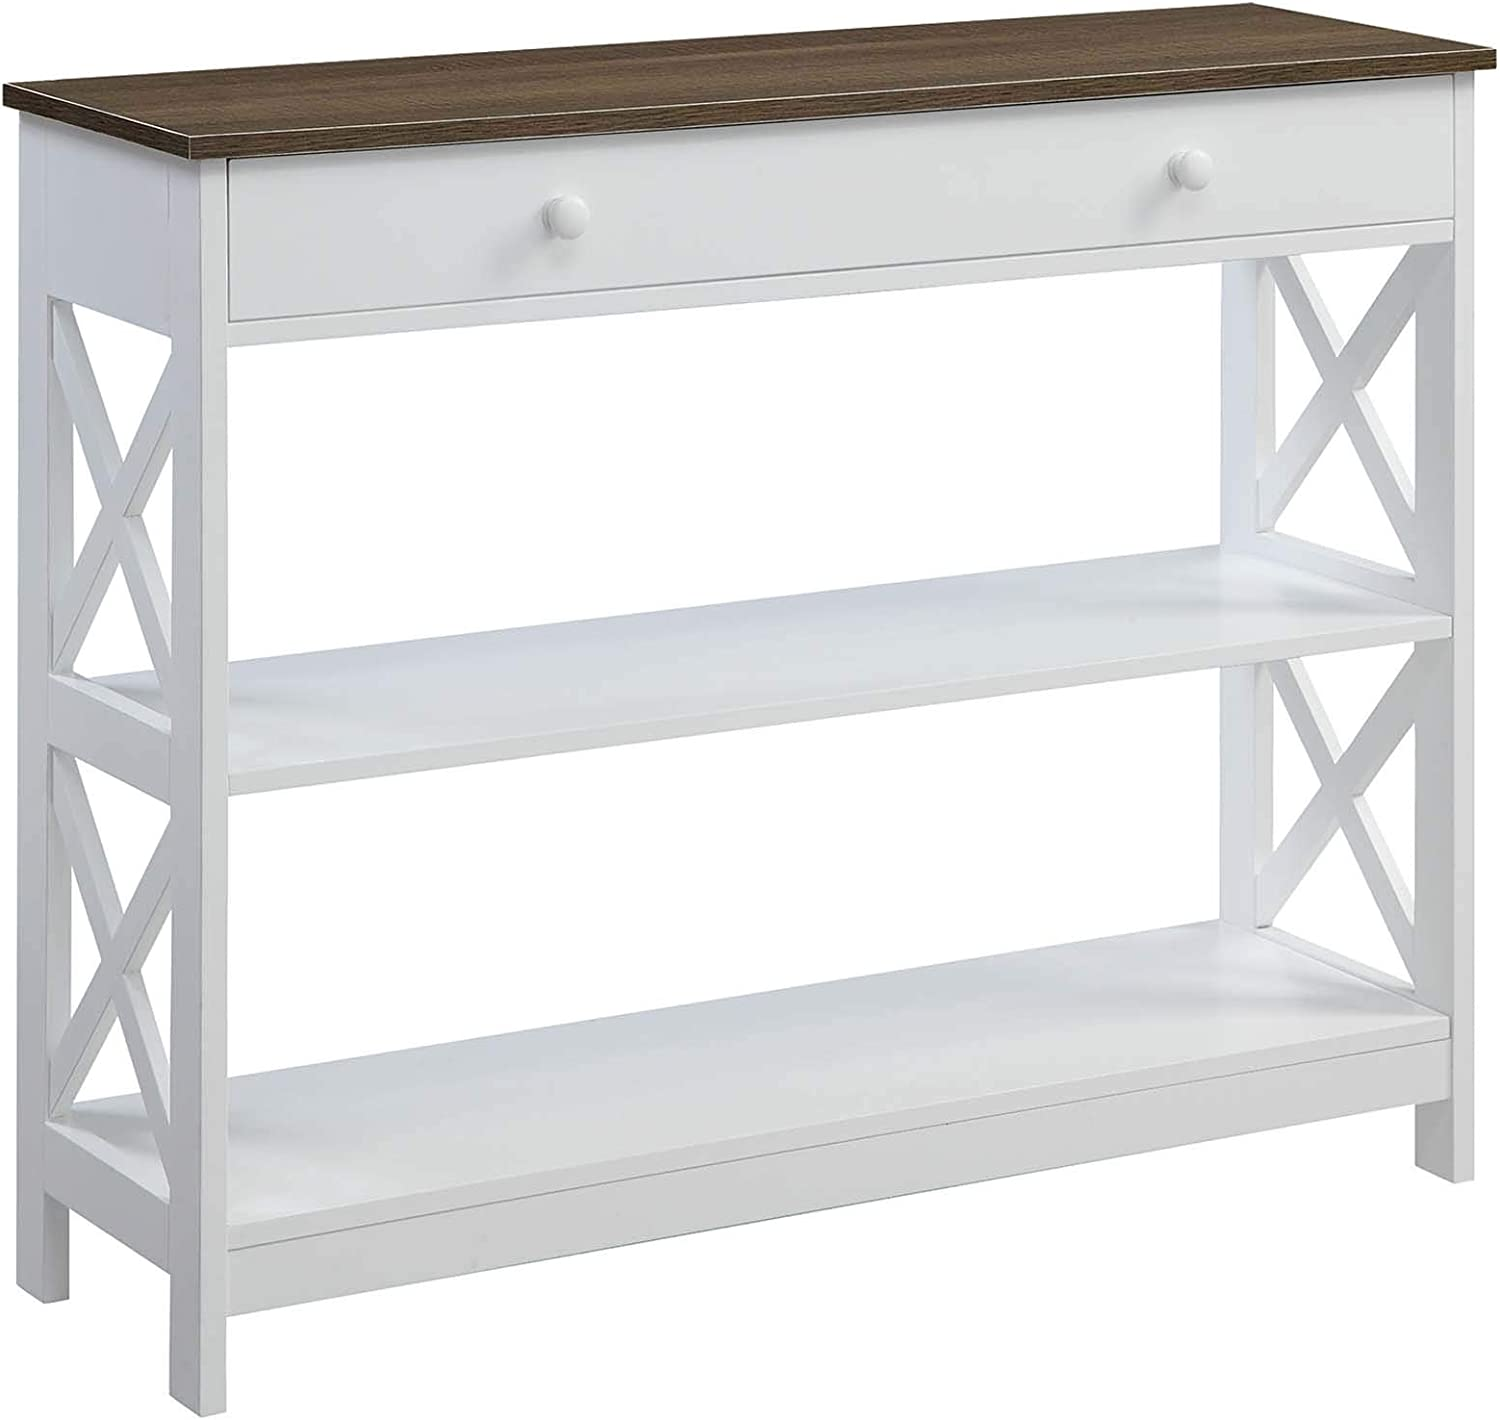 Convenience Concepts Oxford 1 Drawer Console Table, Driftwood / White